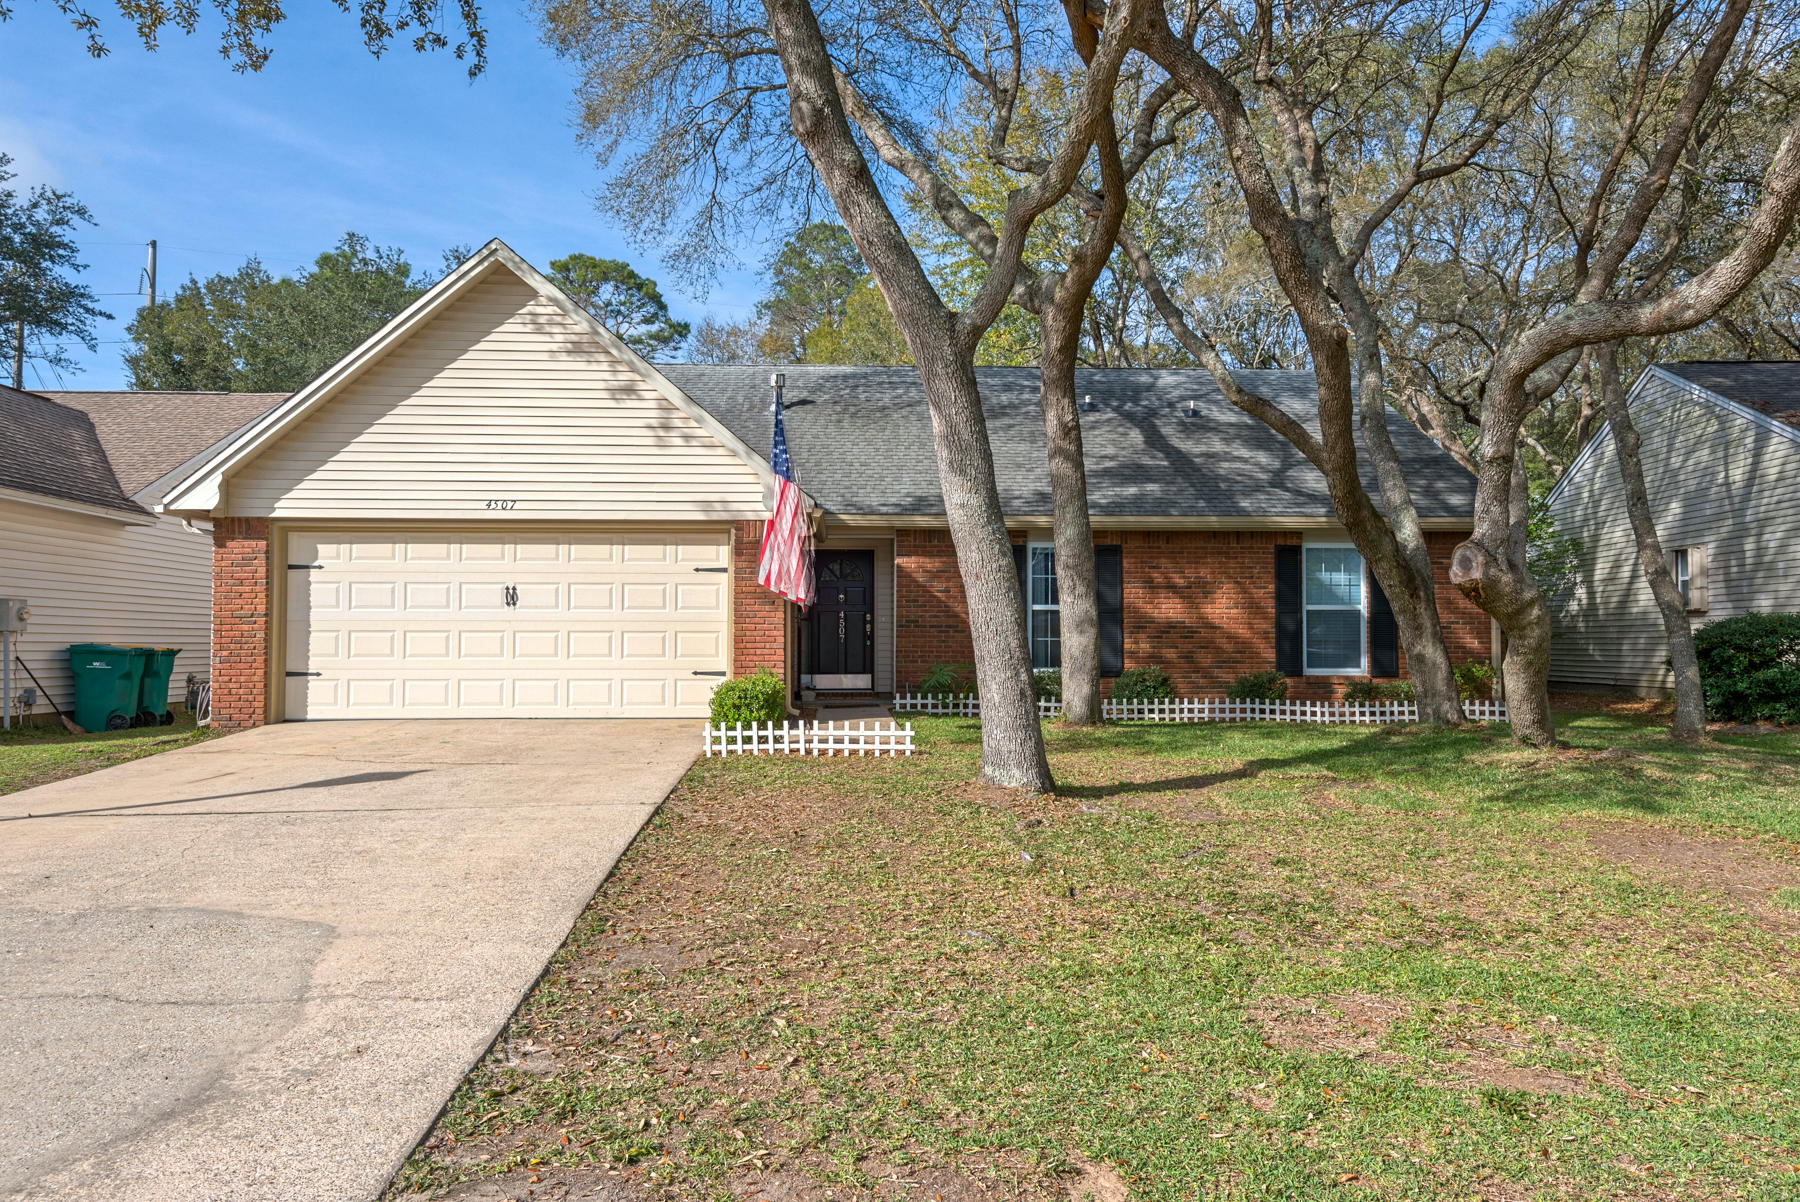 Photo of home for sale at 4507 Parkwood, Niceville FL